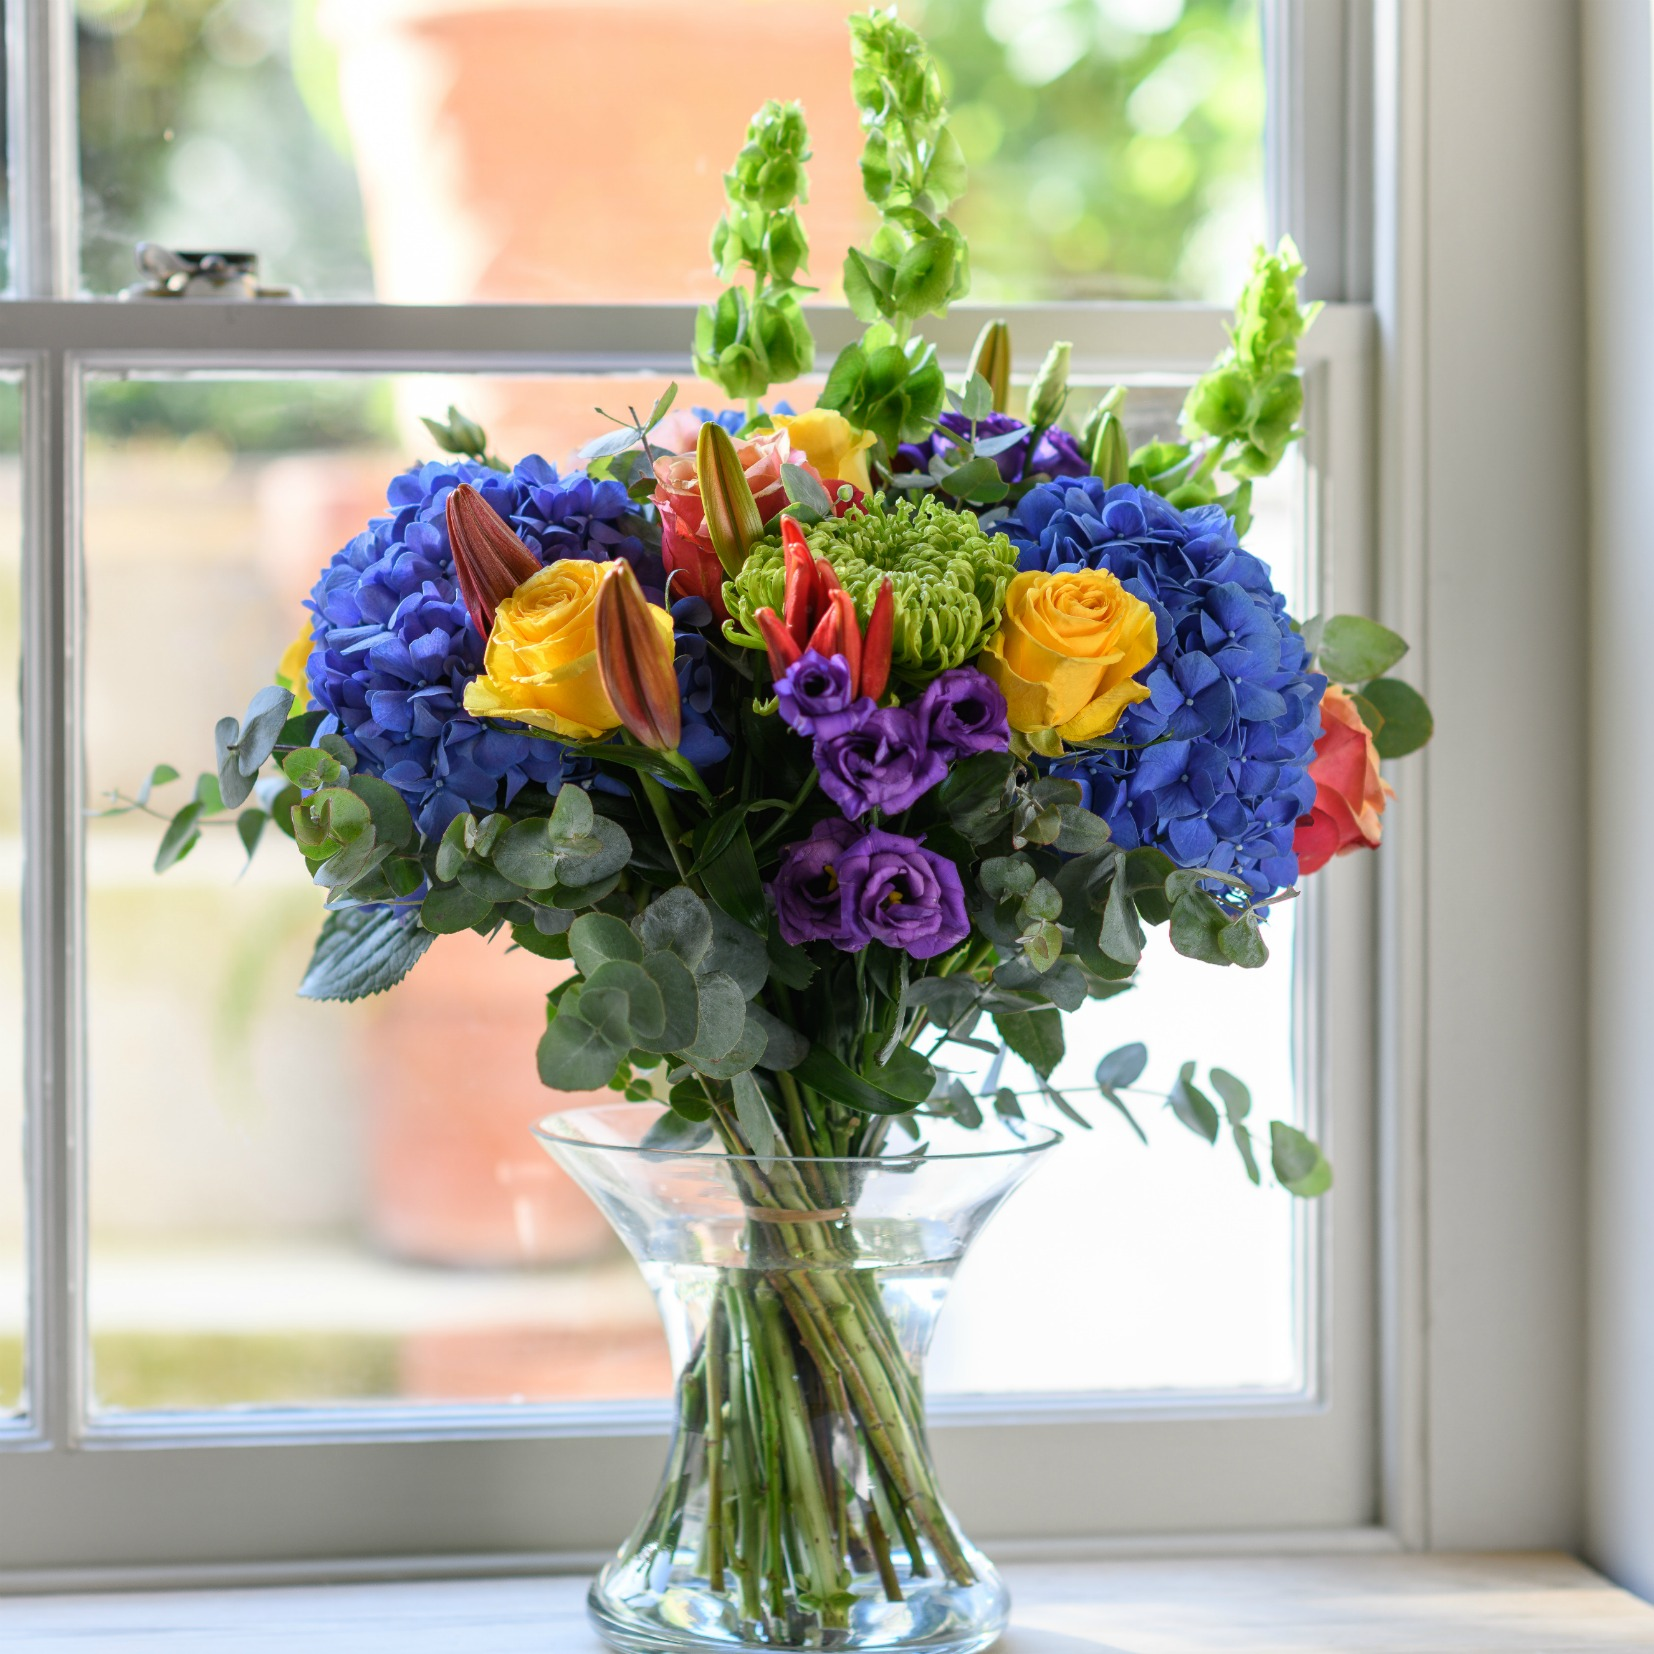 Bourgeois * Blue Sky Days Bouquet | Flower Studio Shop